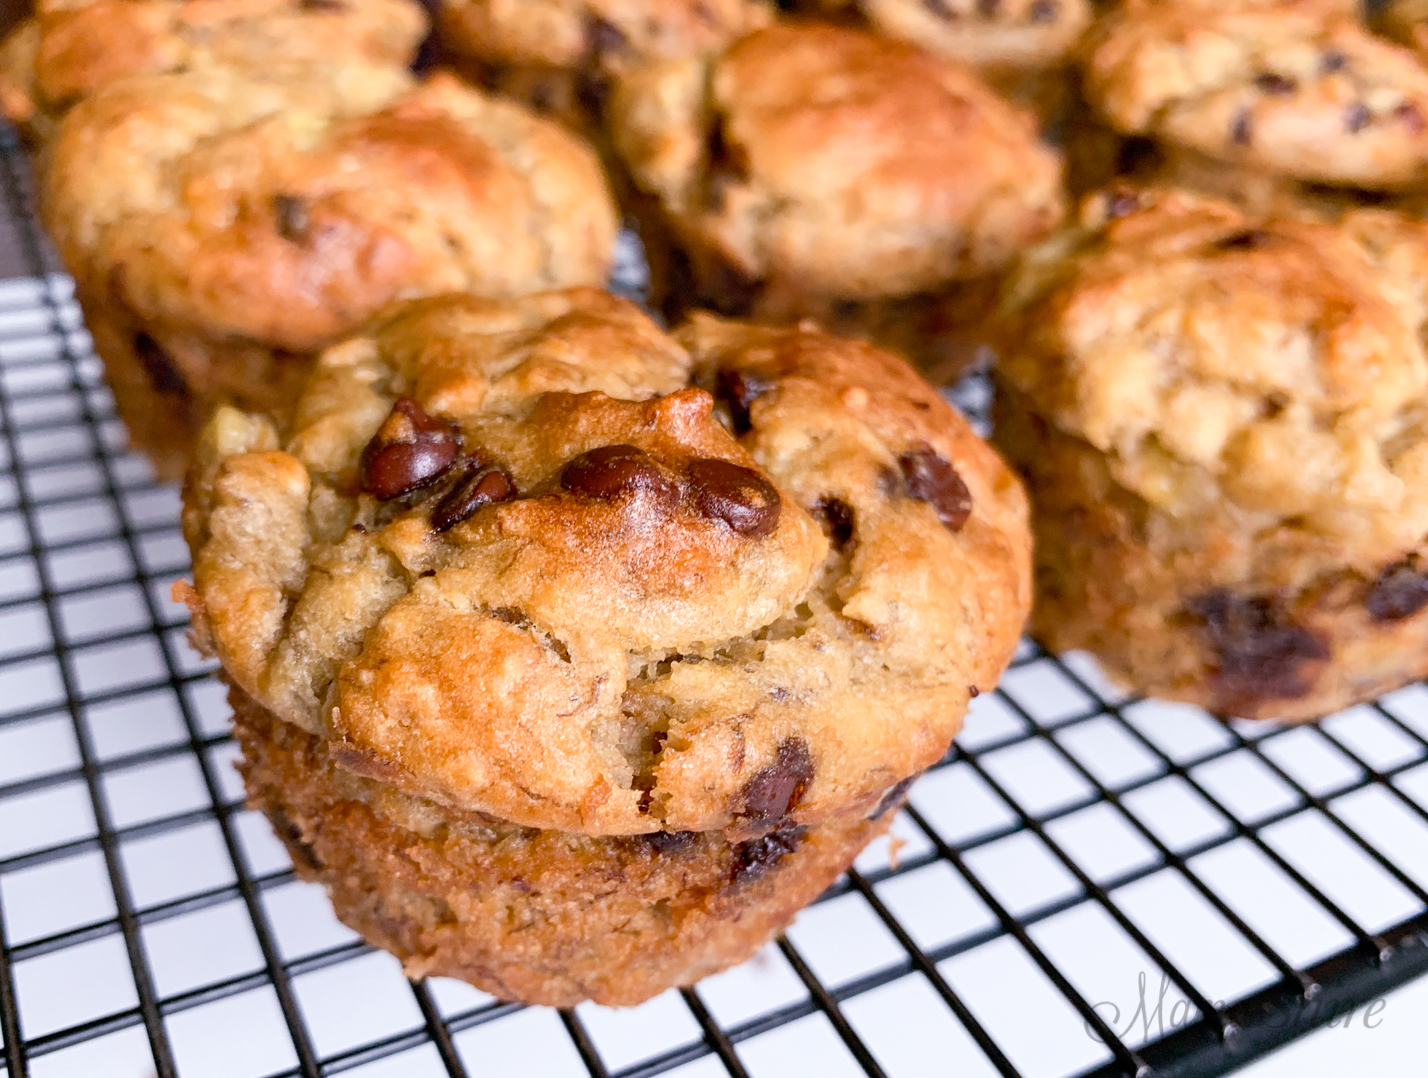 Chocolate chip filled banana muffins - gluten-free and dairy-free.